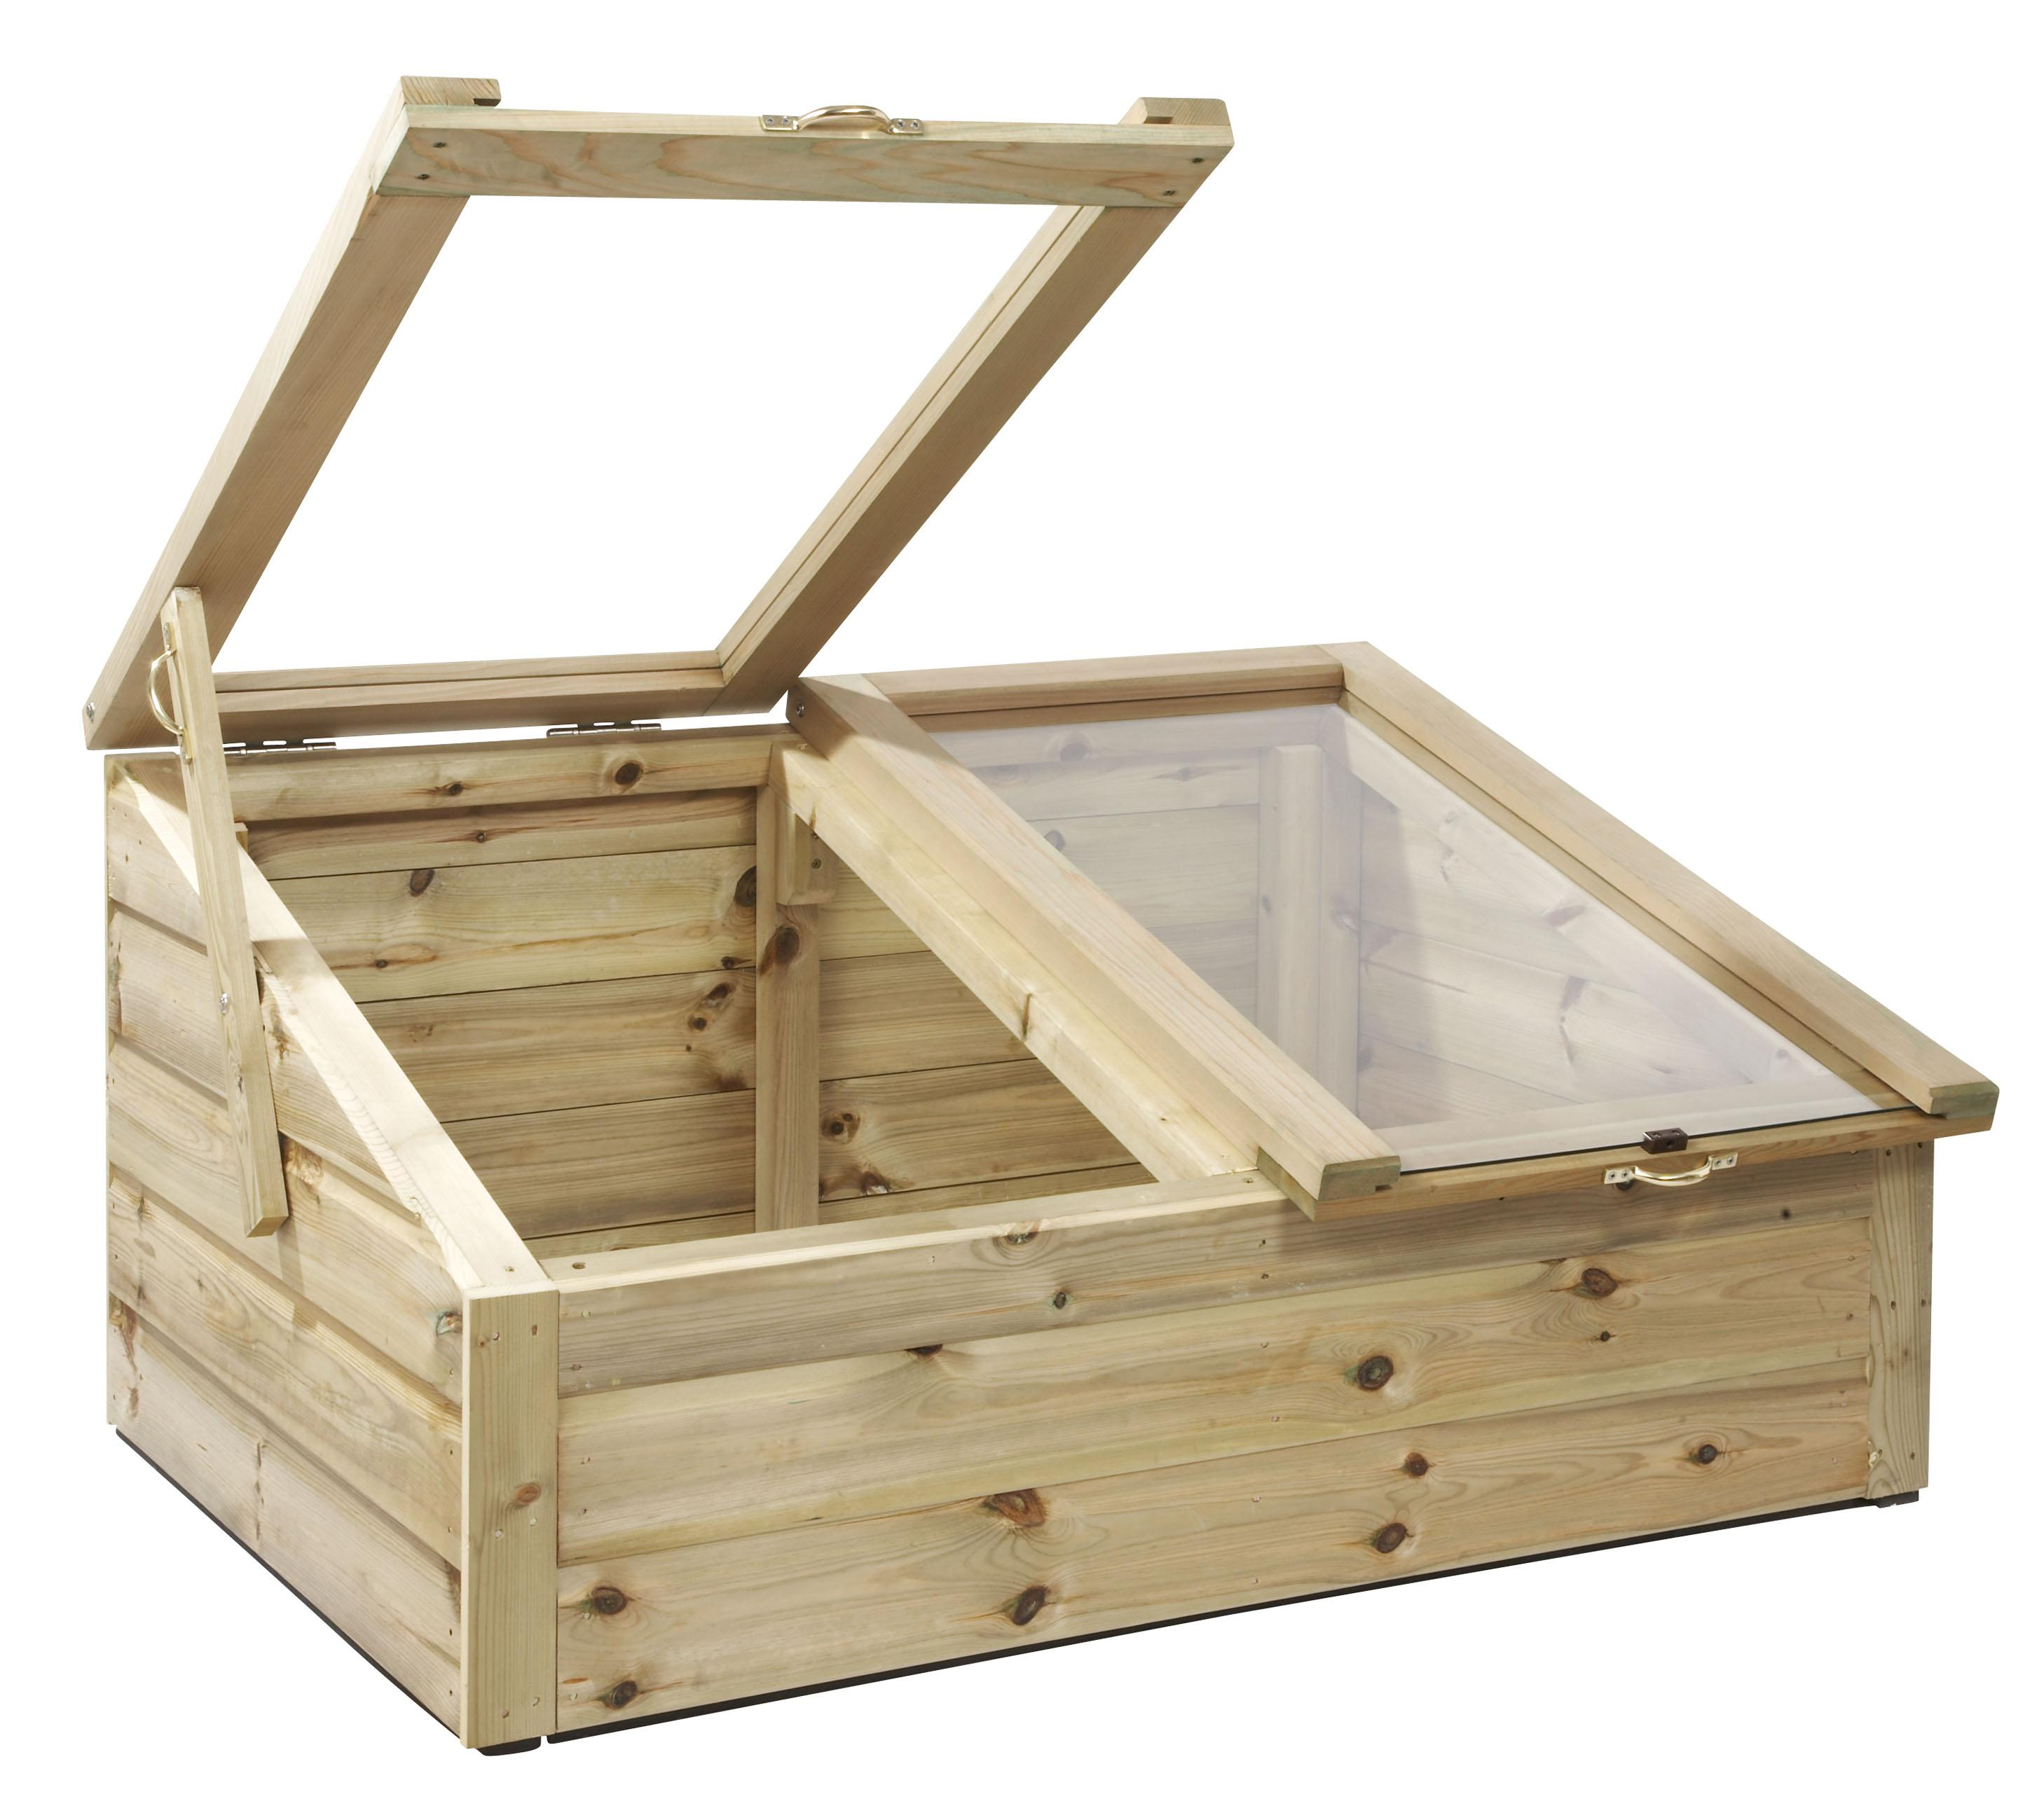 Tanalised wooden cold frames 3ft x 5ft mini greenhouse ebay for Small wooden greenhouse plans